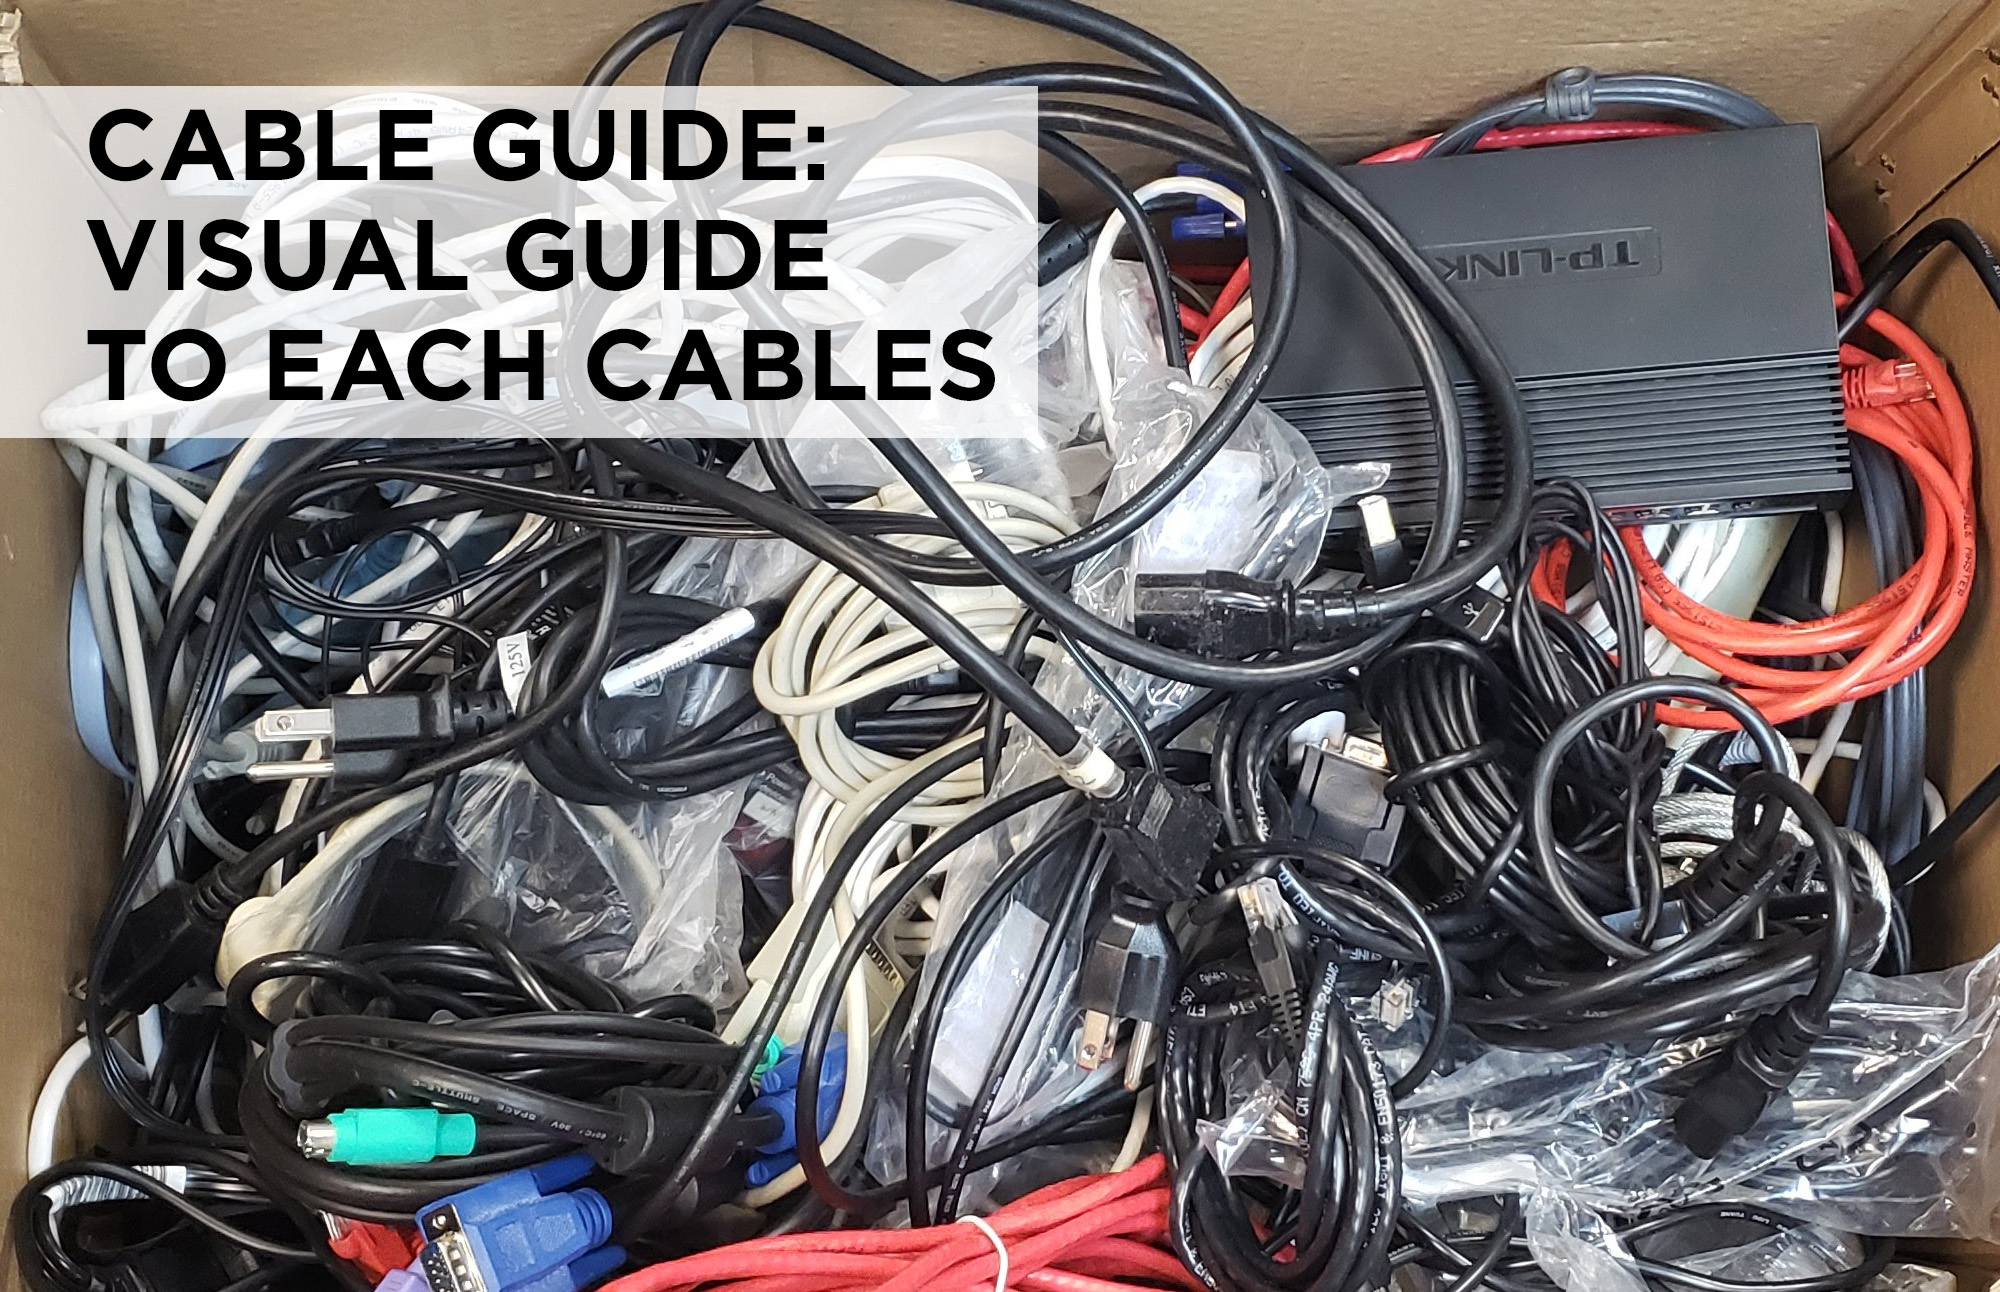 Find out which cable is which with the Central Computers handy visual cable guide